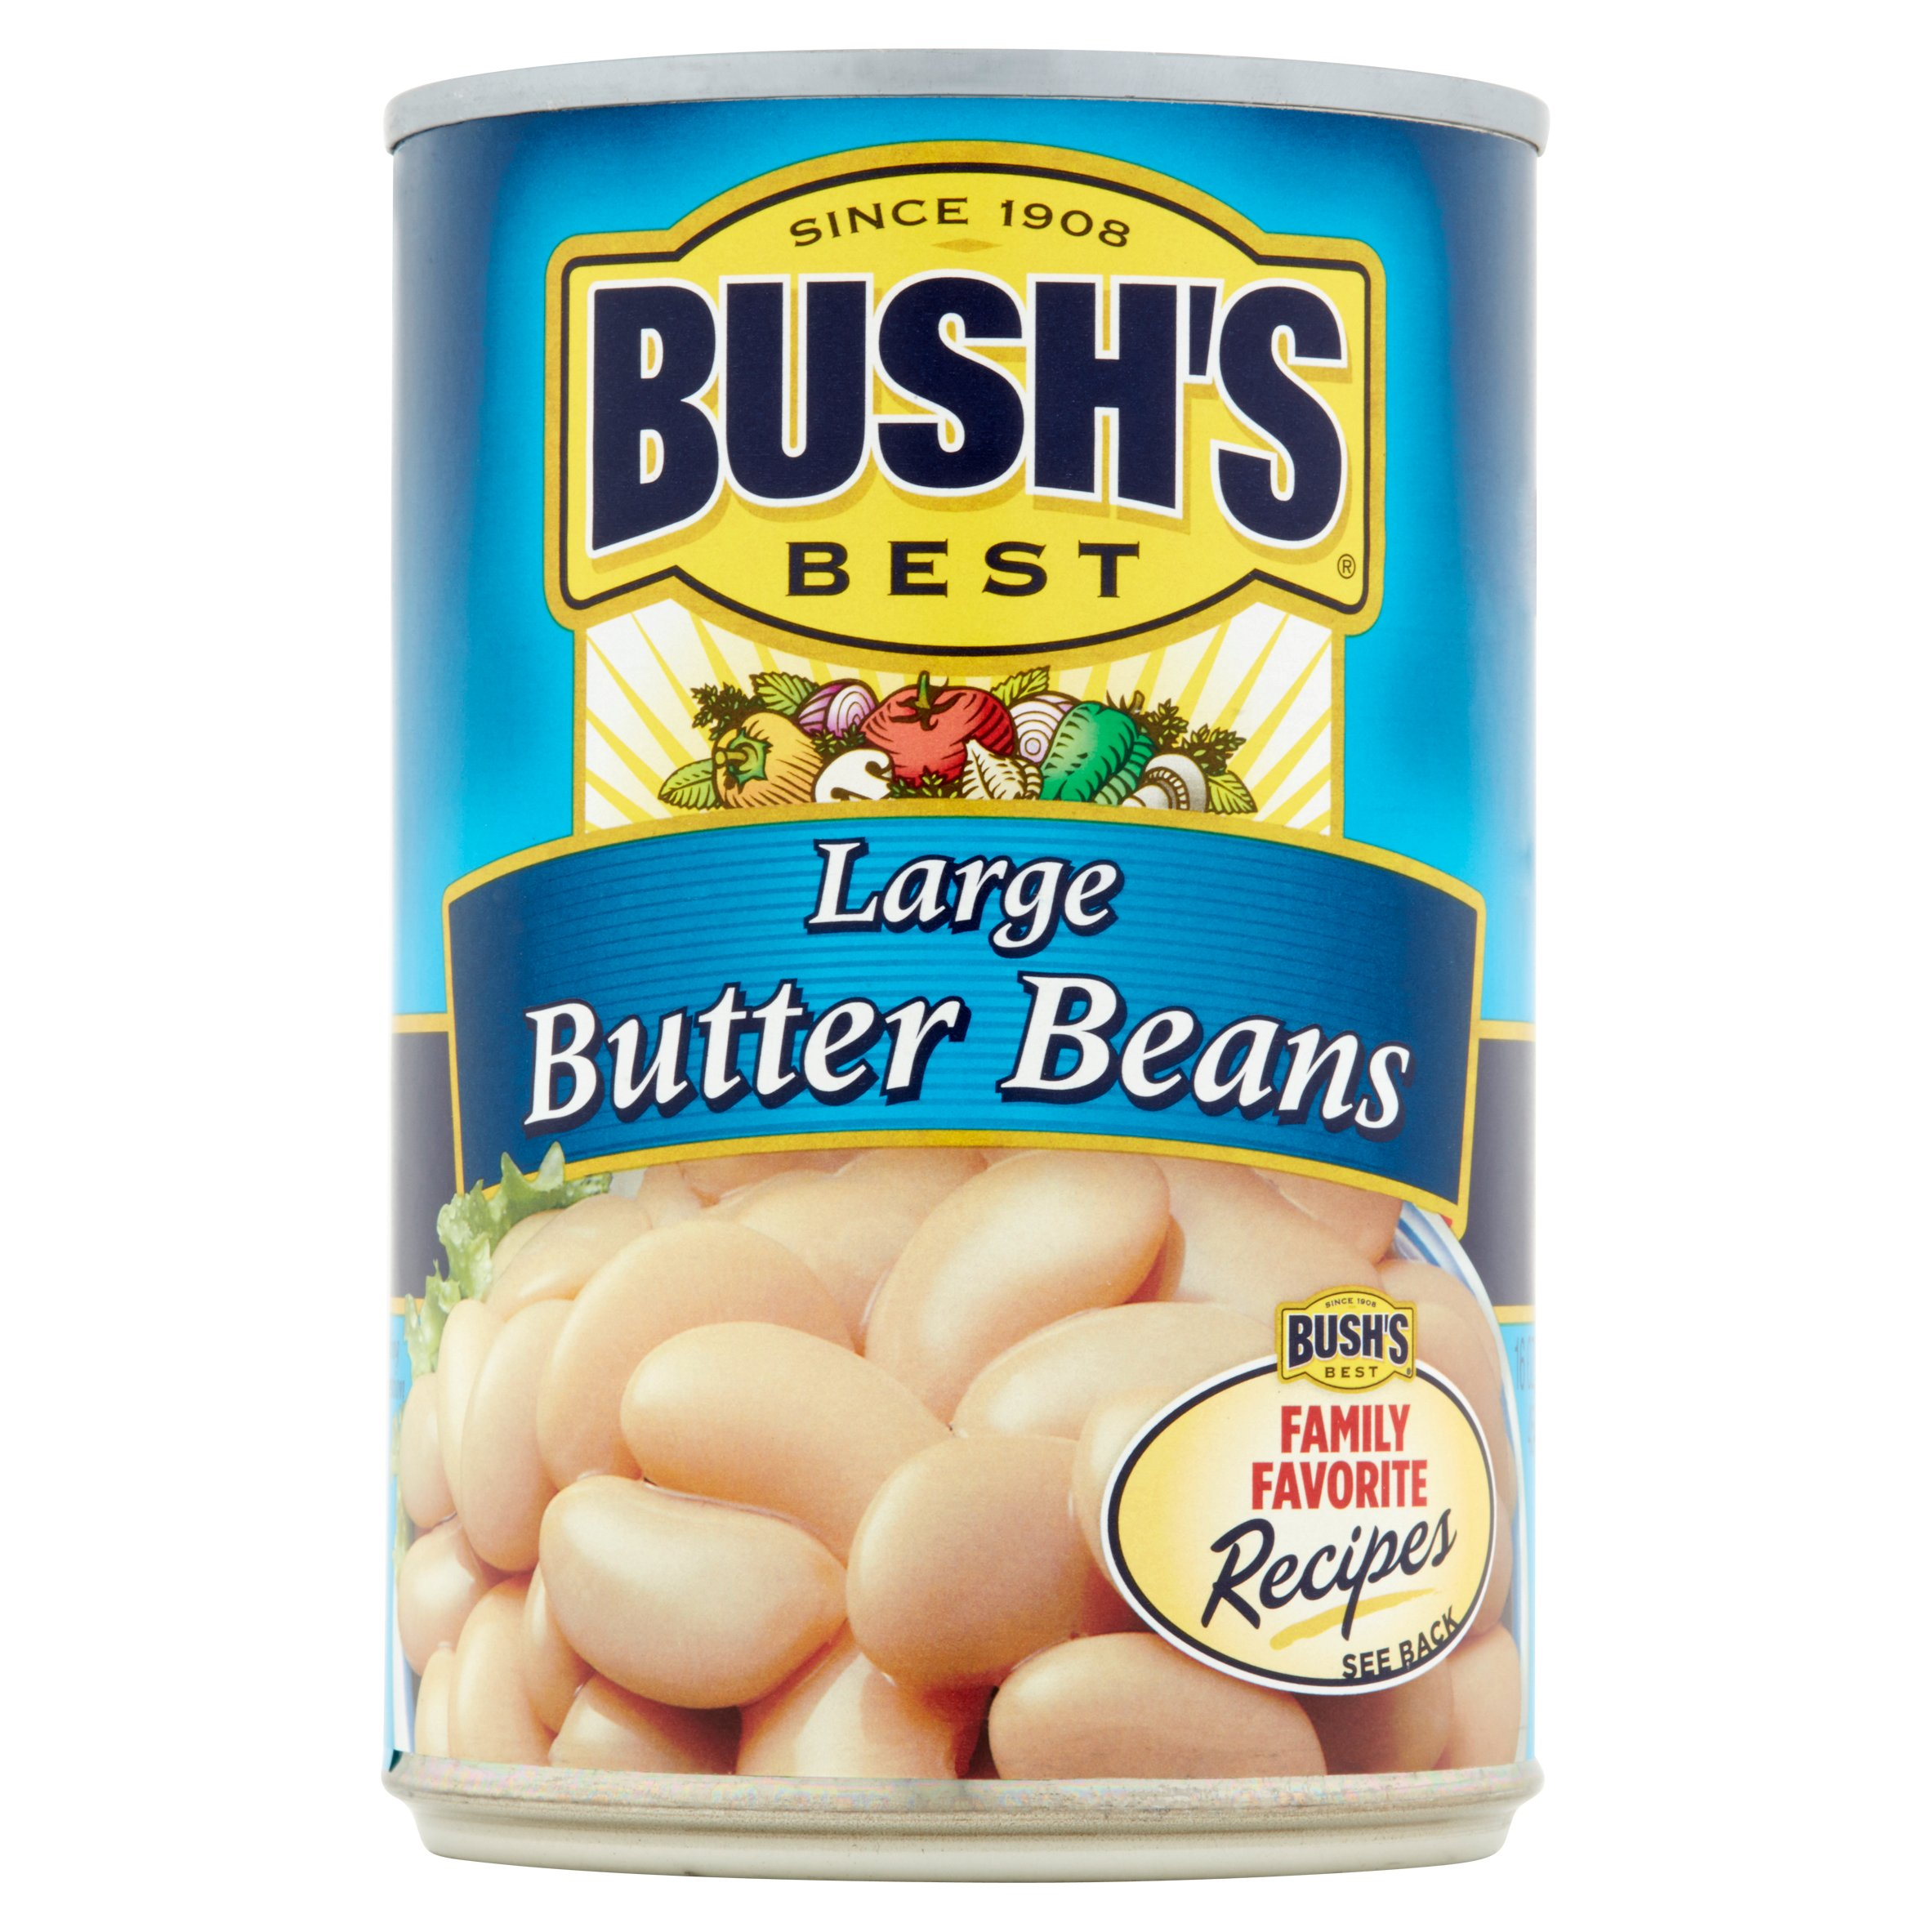 Bushs Best Large Butter Beans, 16 oz by Bush Brothers & Company